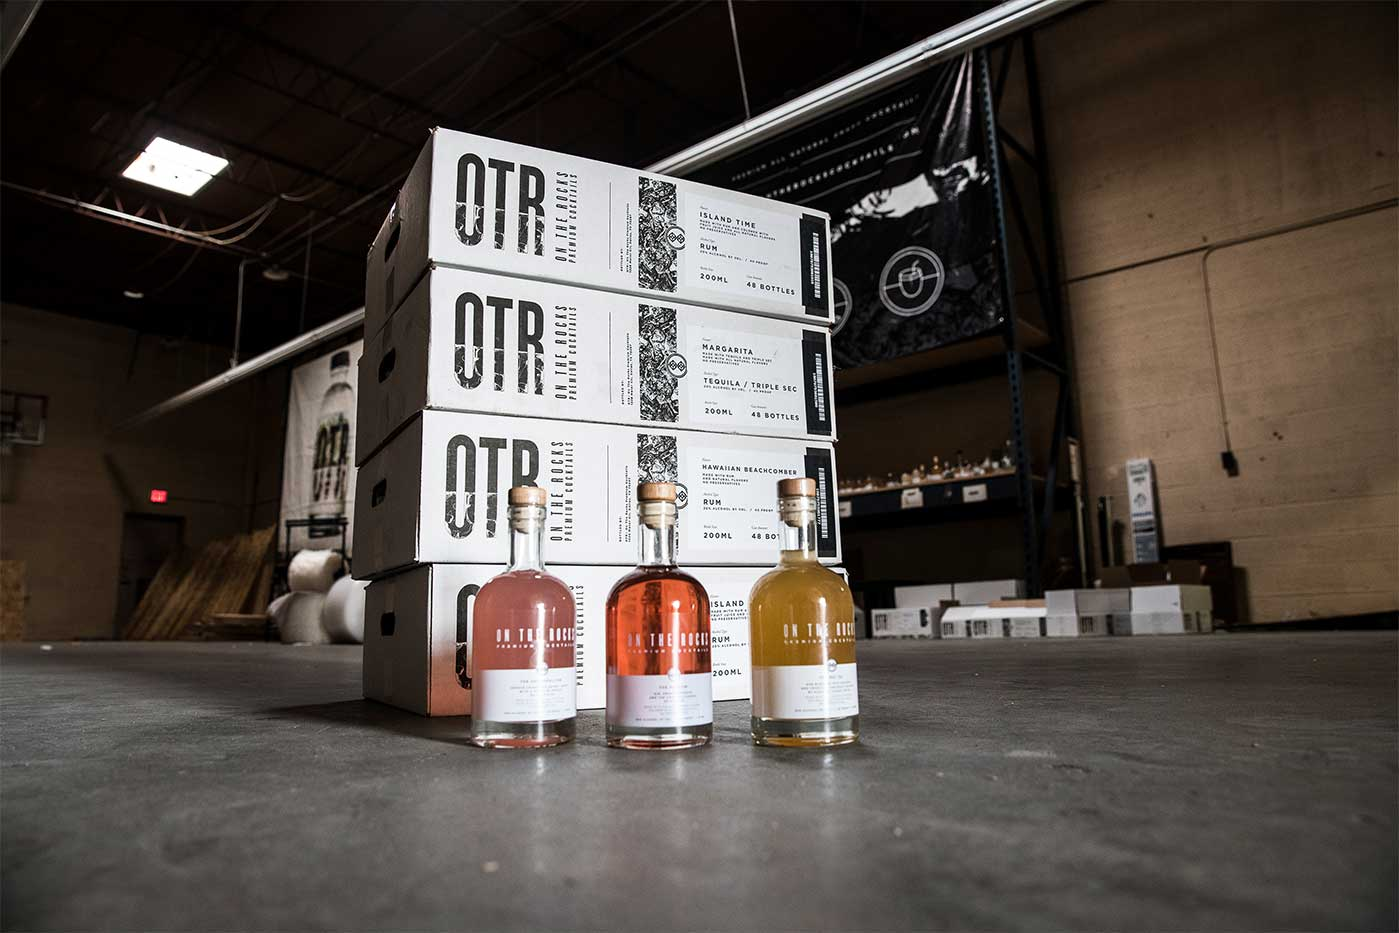 OTR: Products